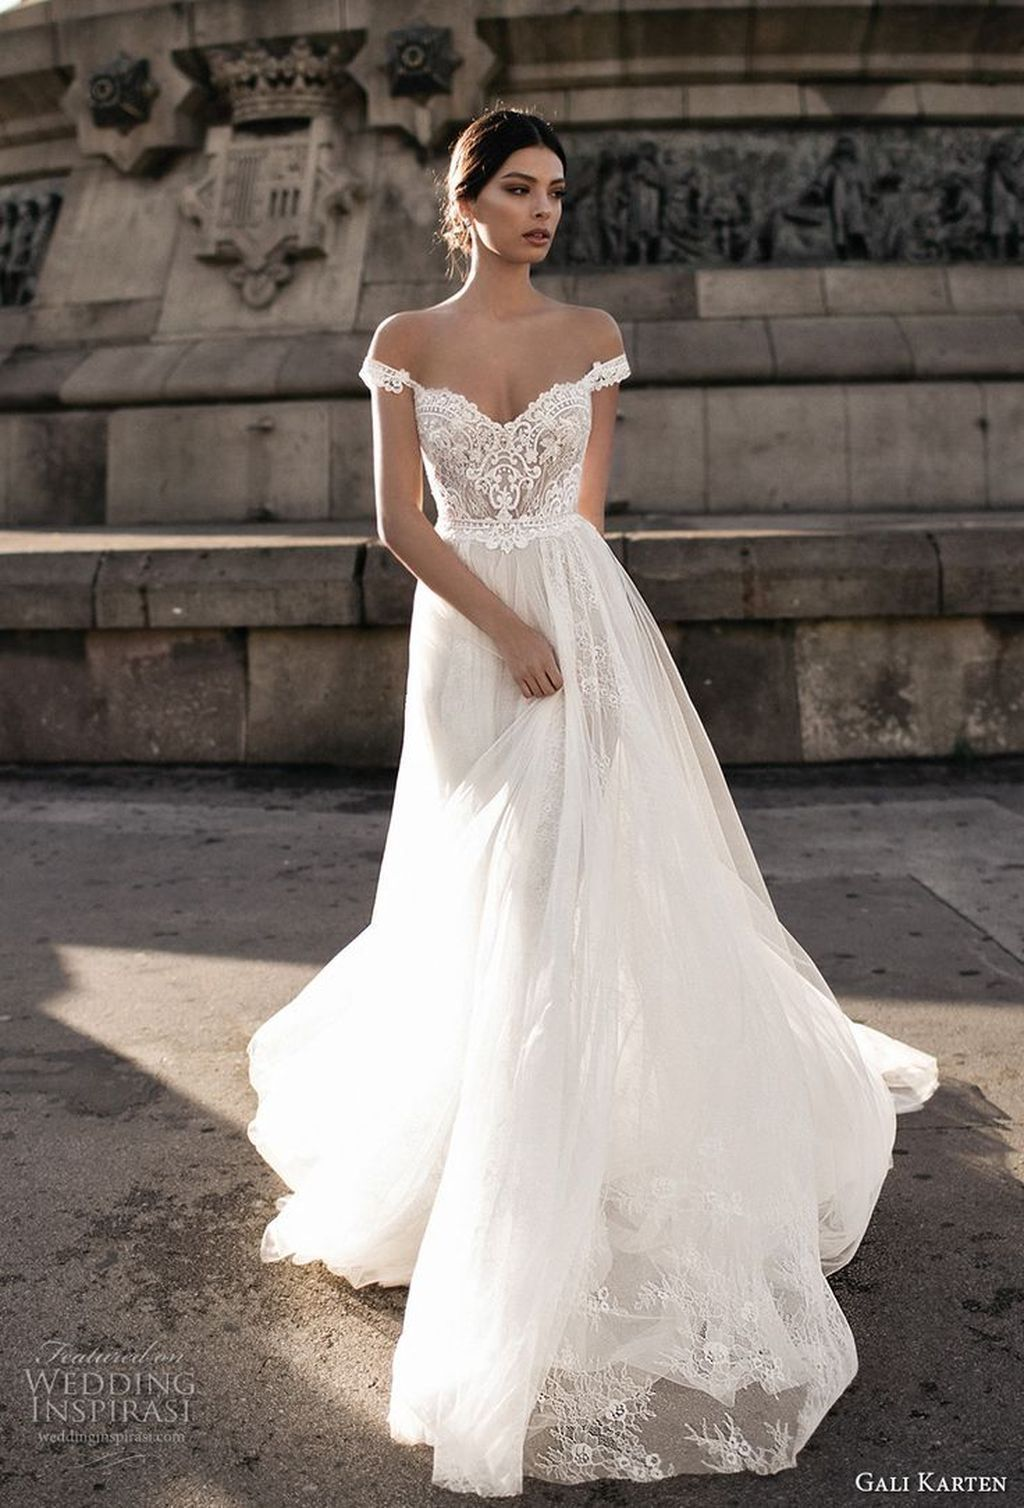 Cool Simple but Unique Mermaid Wedding Dress Ideas More at